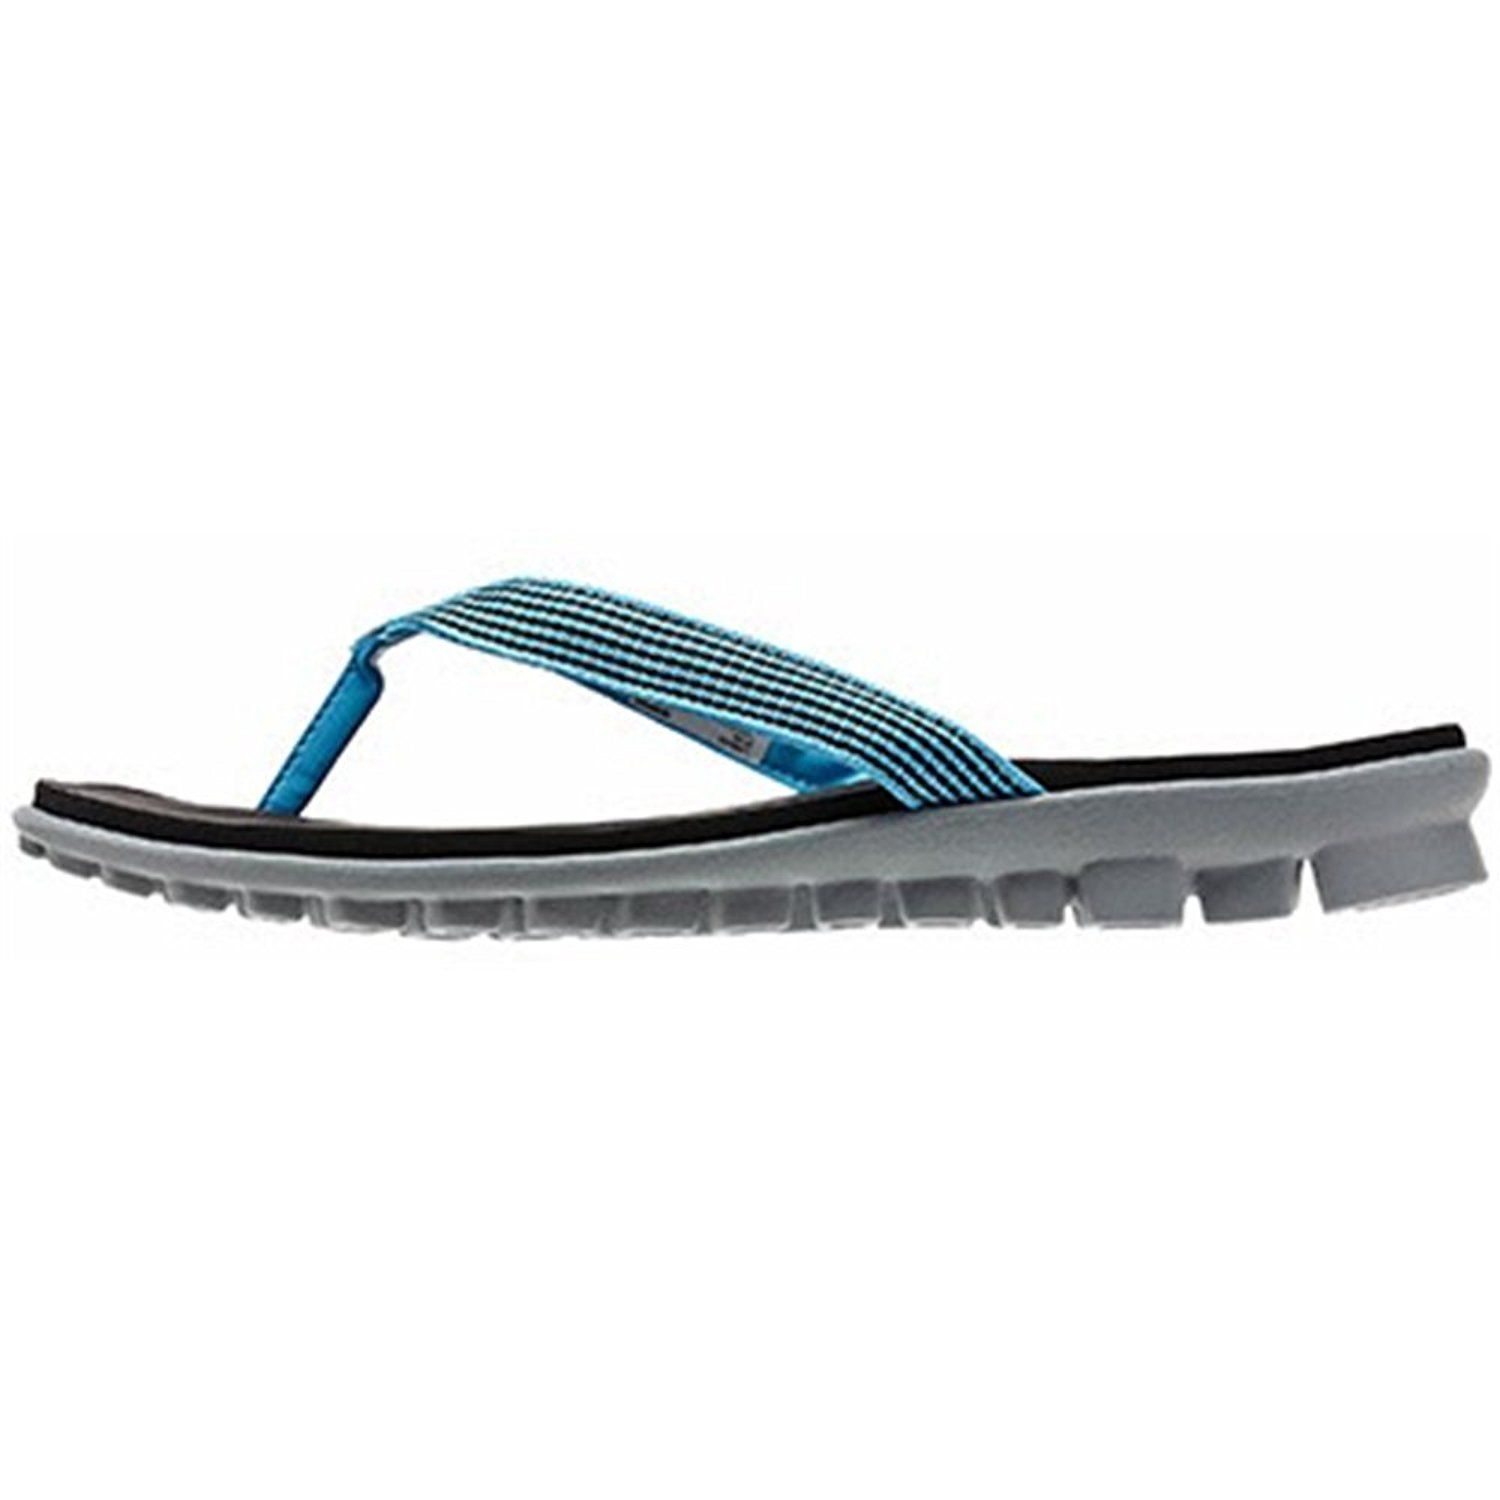 b19ed58f1d2 Reebok Womens CrossFit Thong Sandals     Review more details here   Sandals